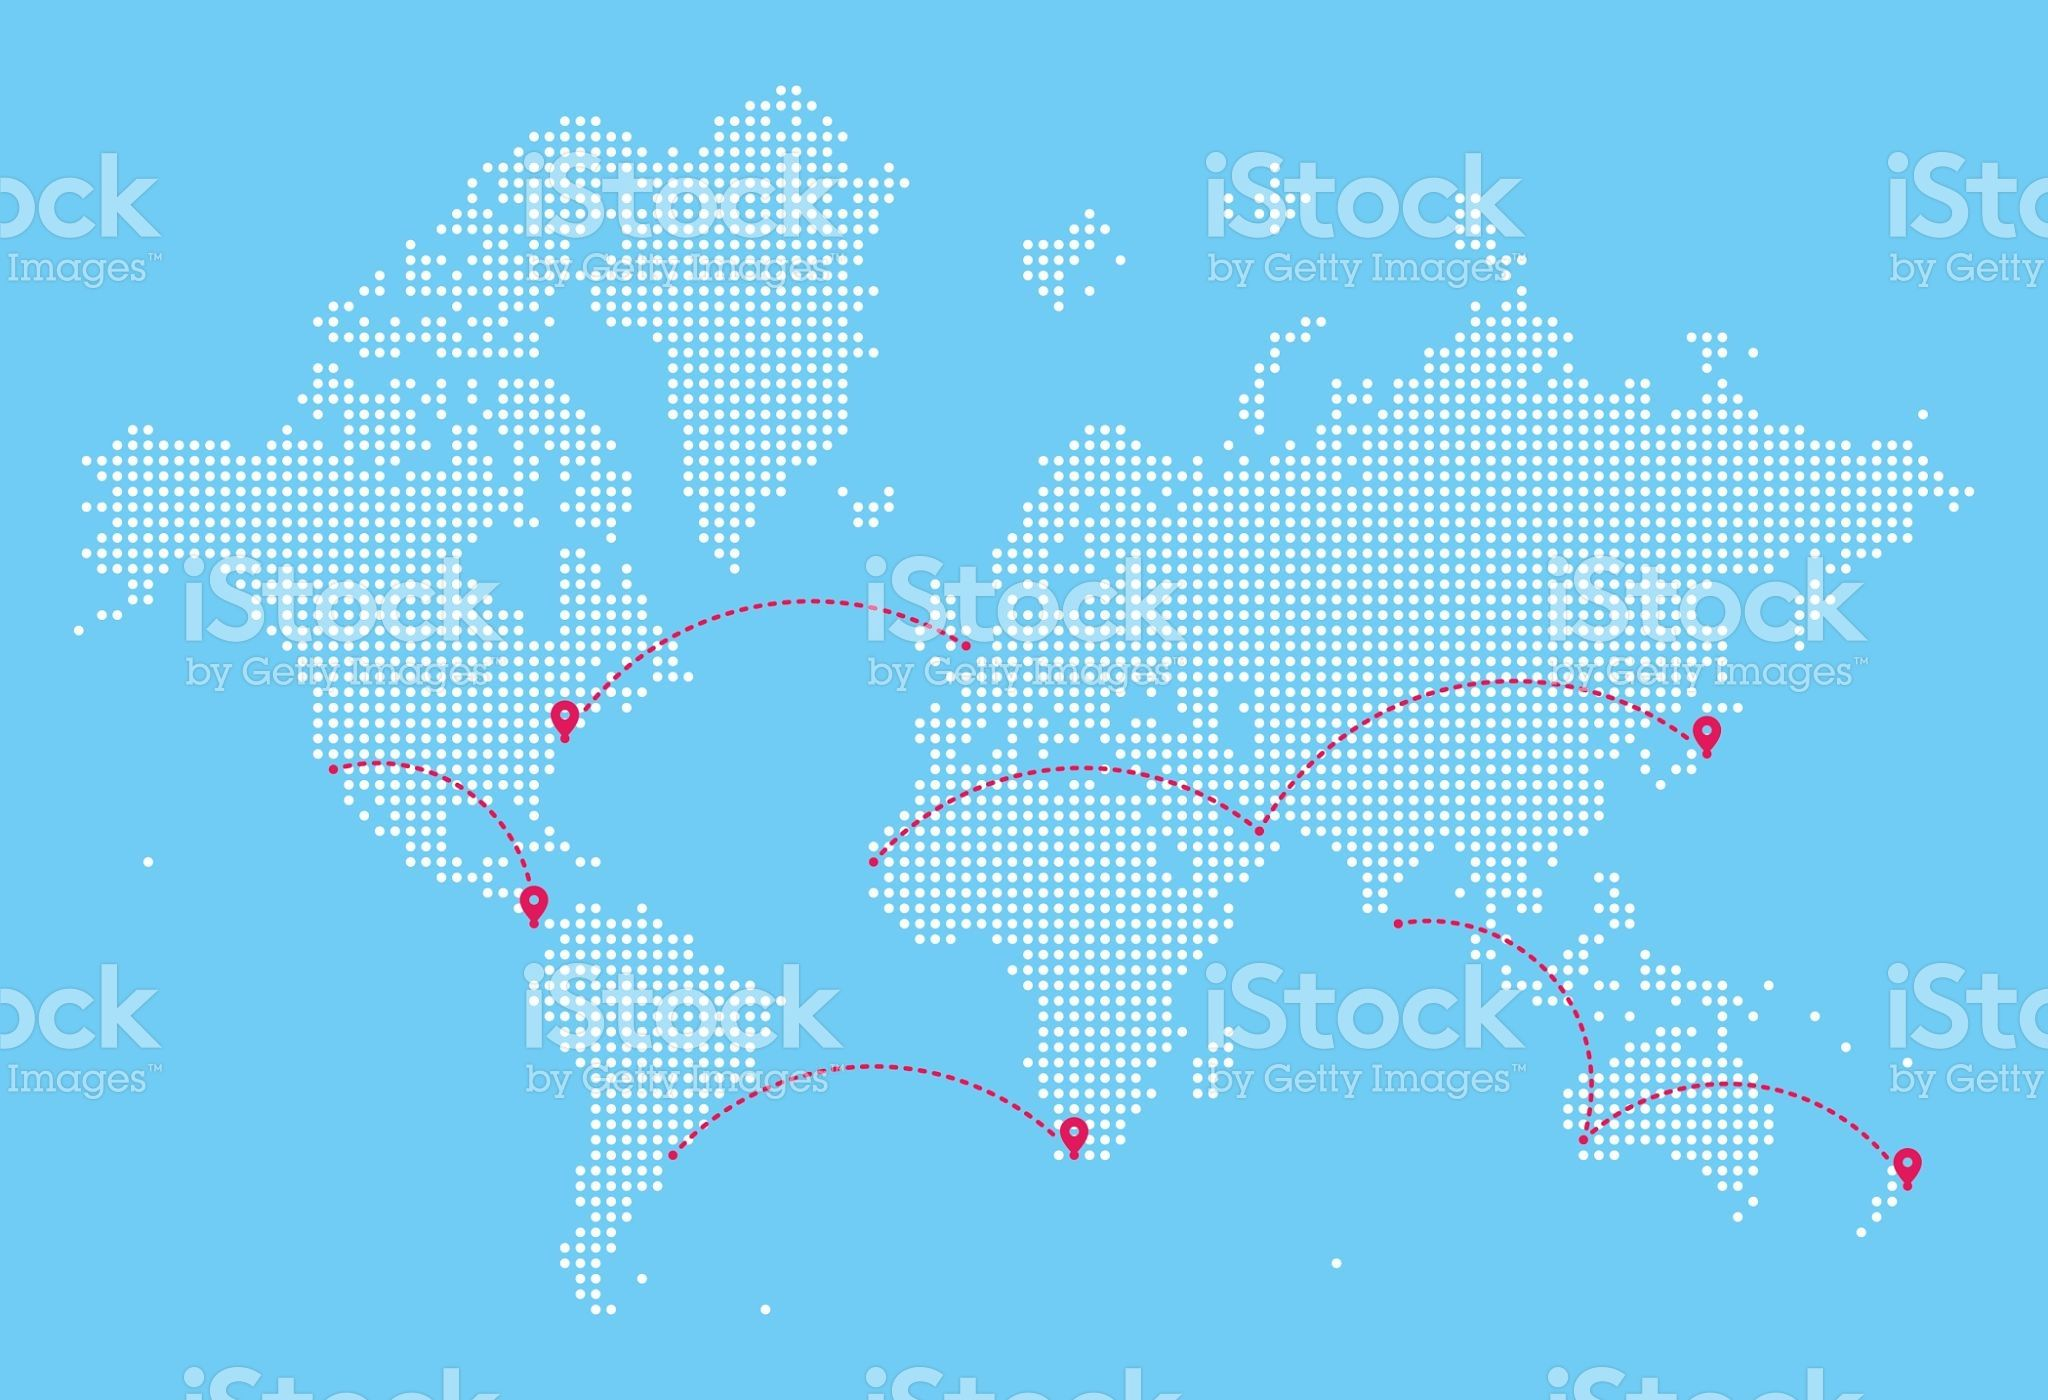 A detailed world map illustration made up of dots with flight path world map with flight paths royalty free stock vector art gumiabroncs Image collections